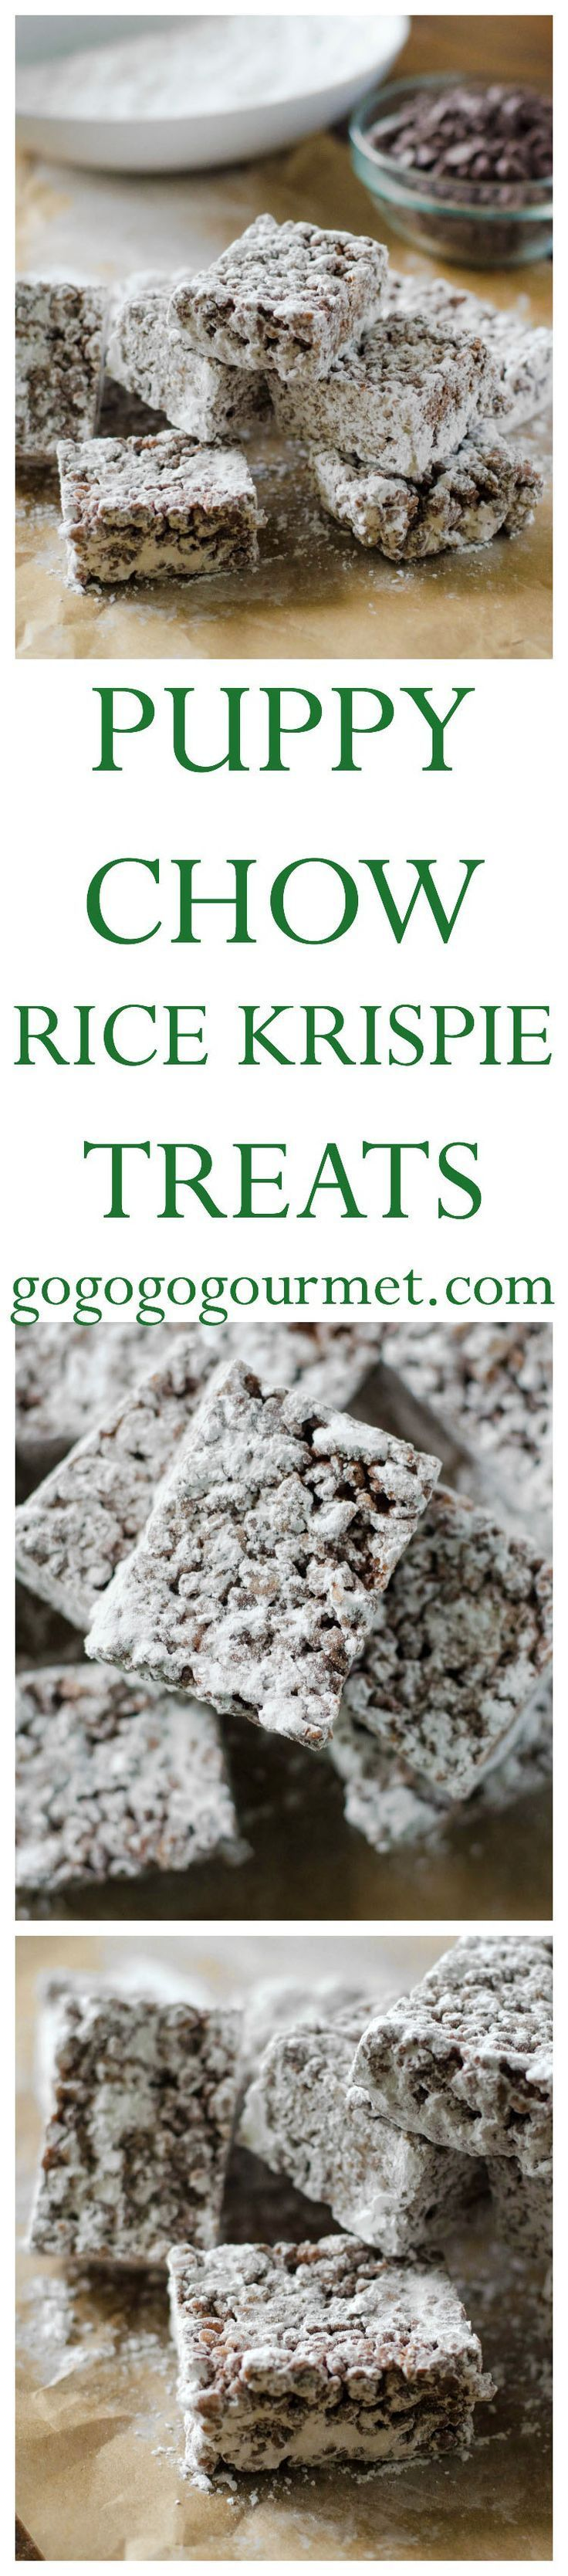 Whether you call it Muddy Buddies or Puppy Chow, this mashup of favorite childhood treats is a definite WIN! | Go Go Go Gourmet @Go Go Go Gourmet